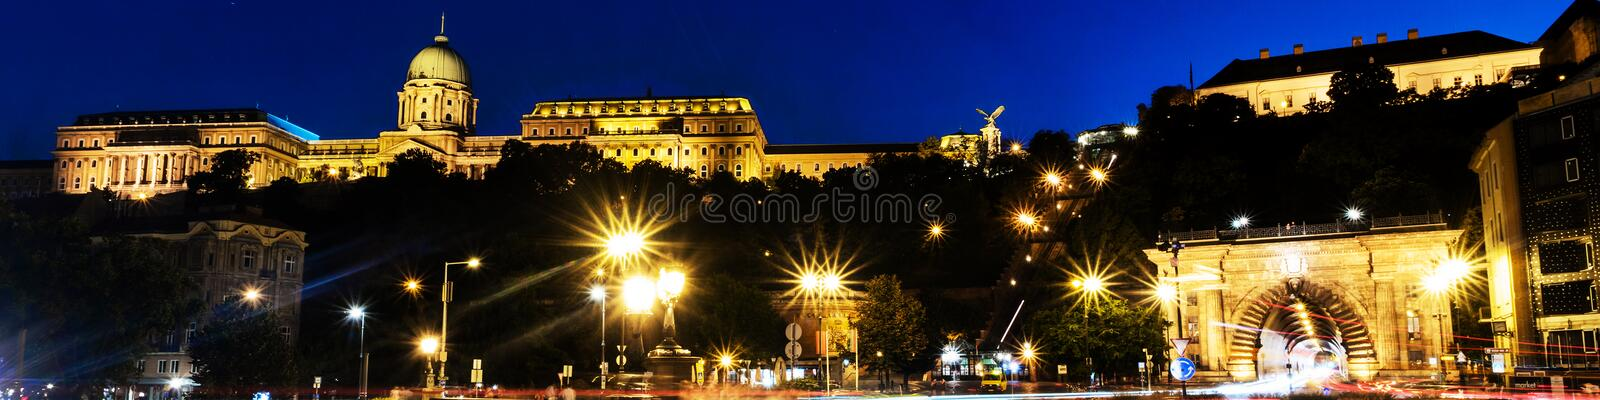 Car traffic trail lights with illuminated Chain bridge and Buda Castle in Budapest, Hungary at night stock photos